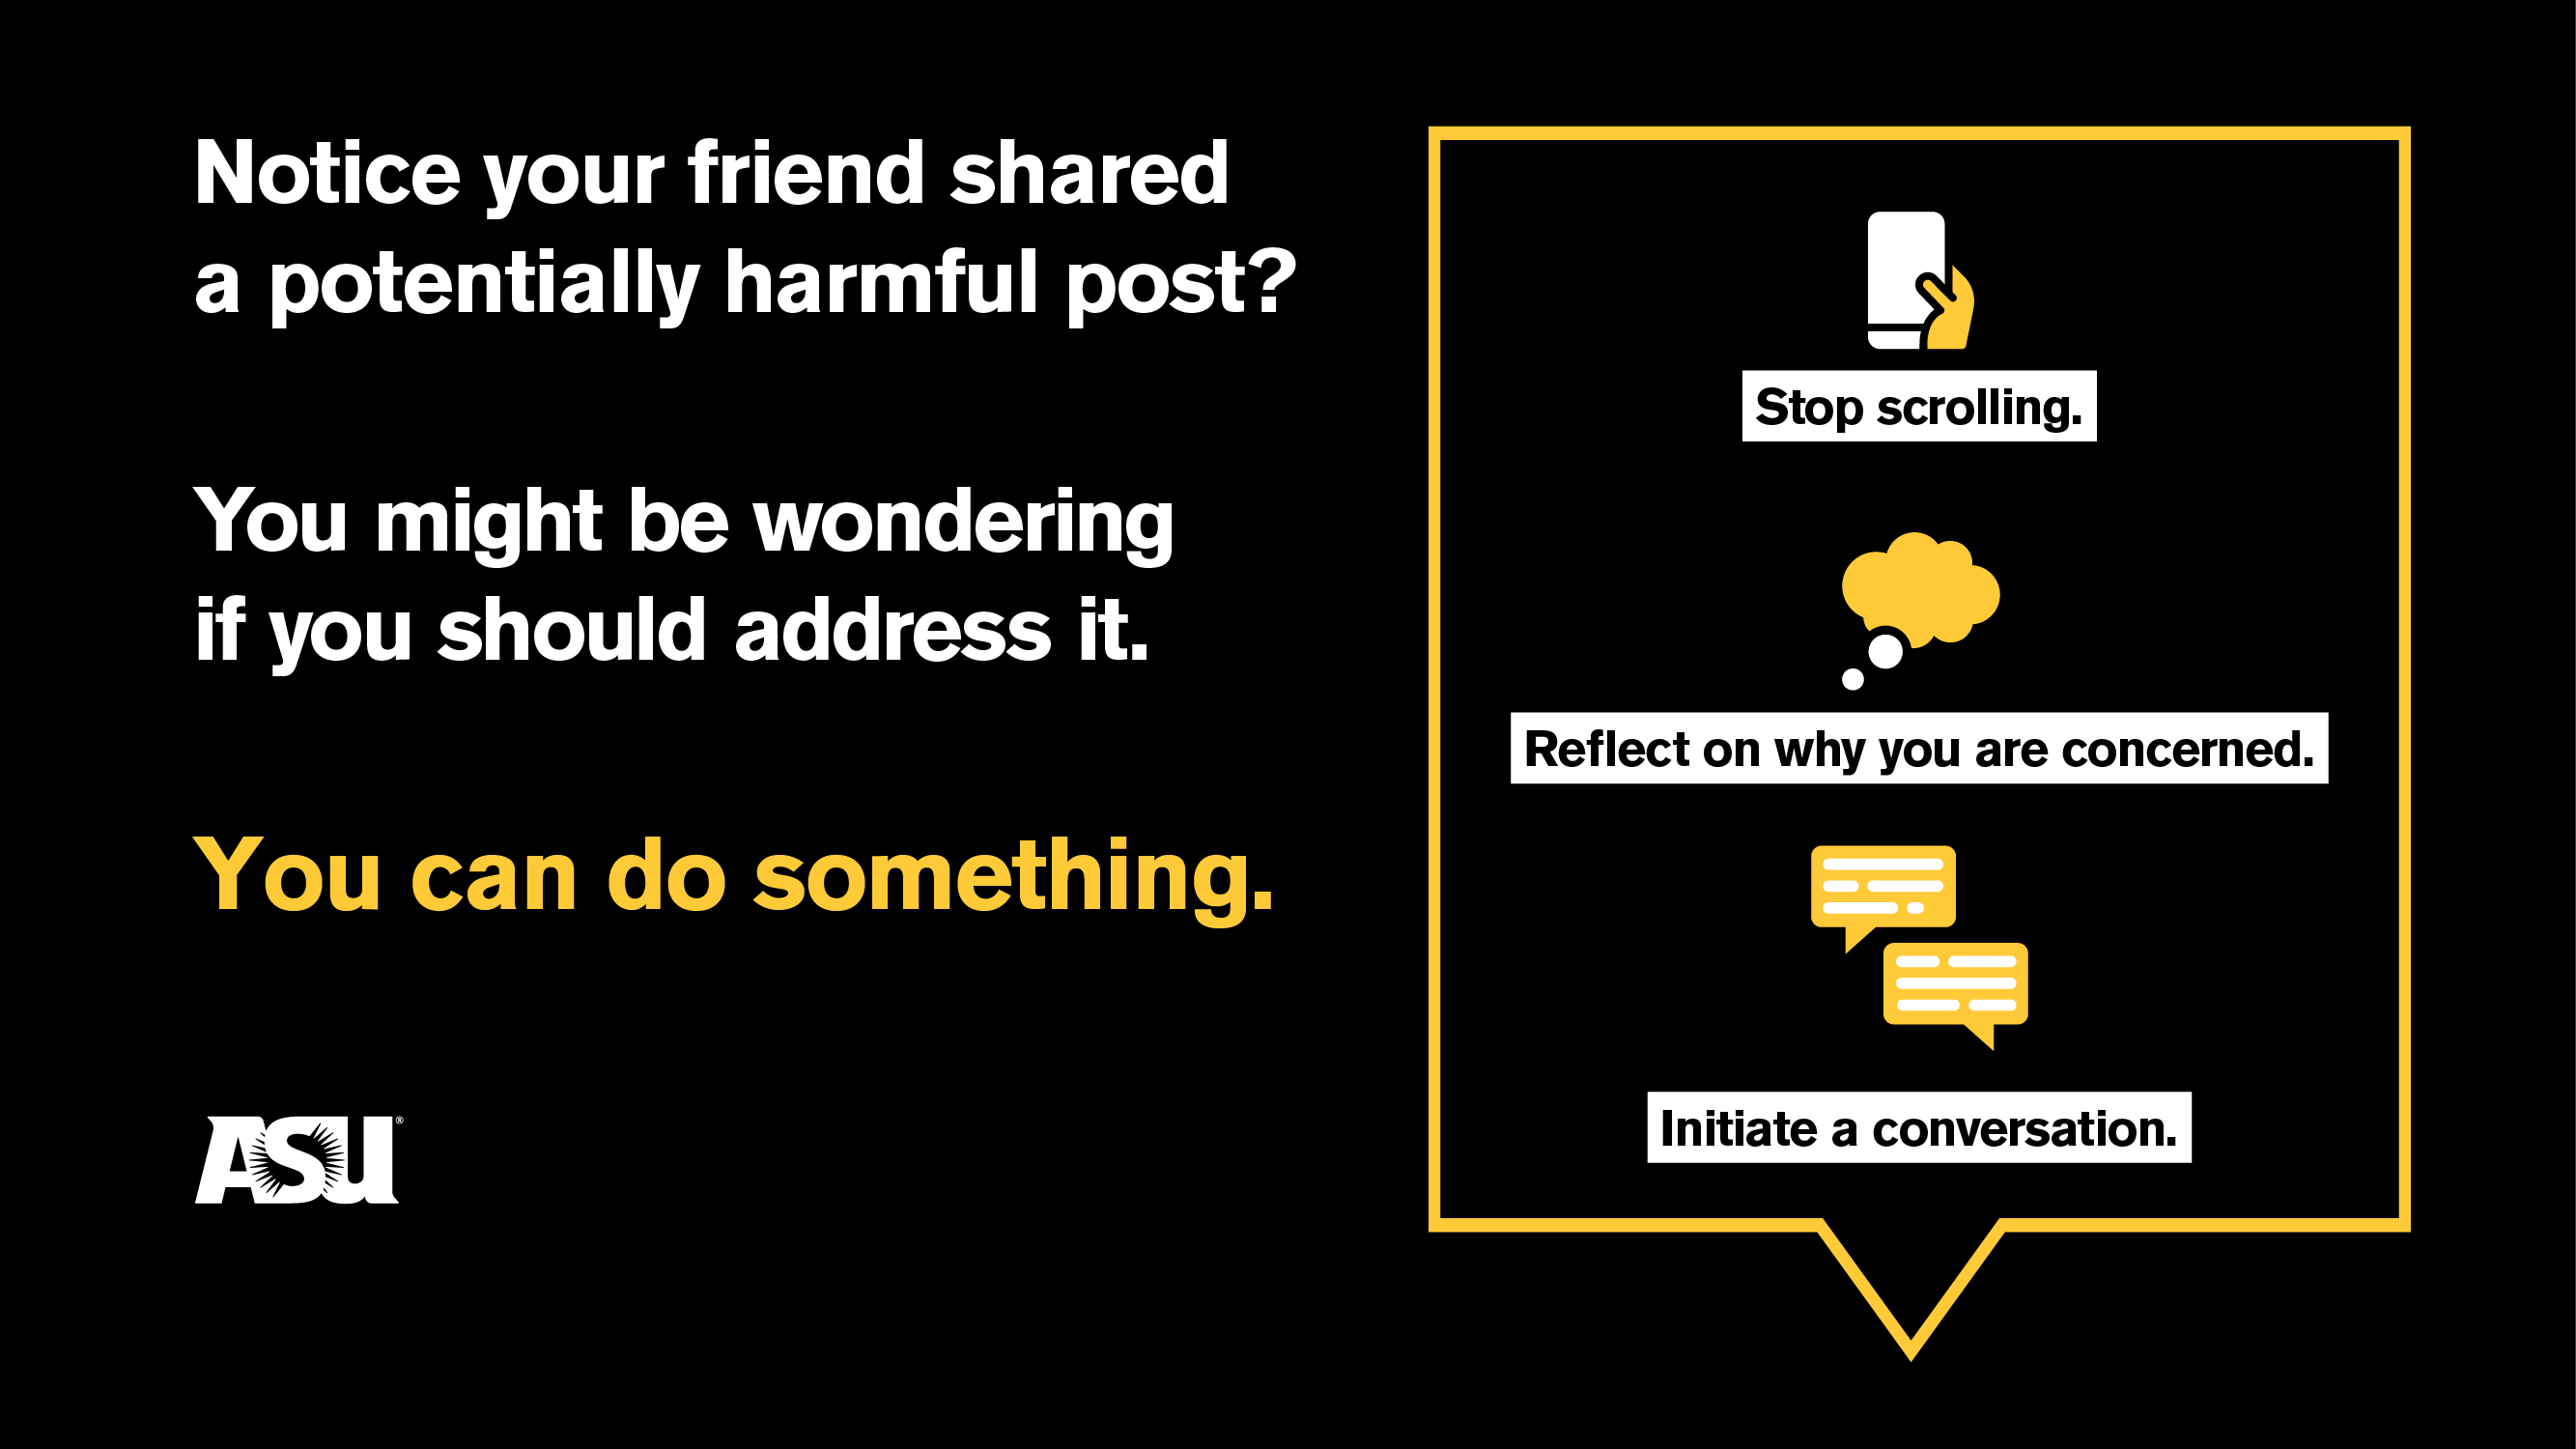 Notice a friend shared a potentially harmful post?